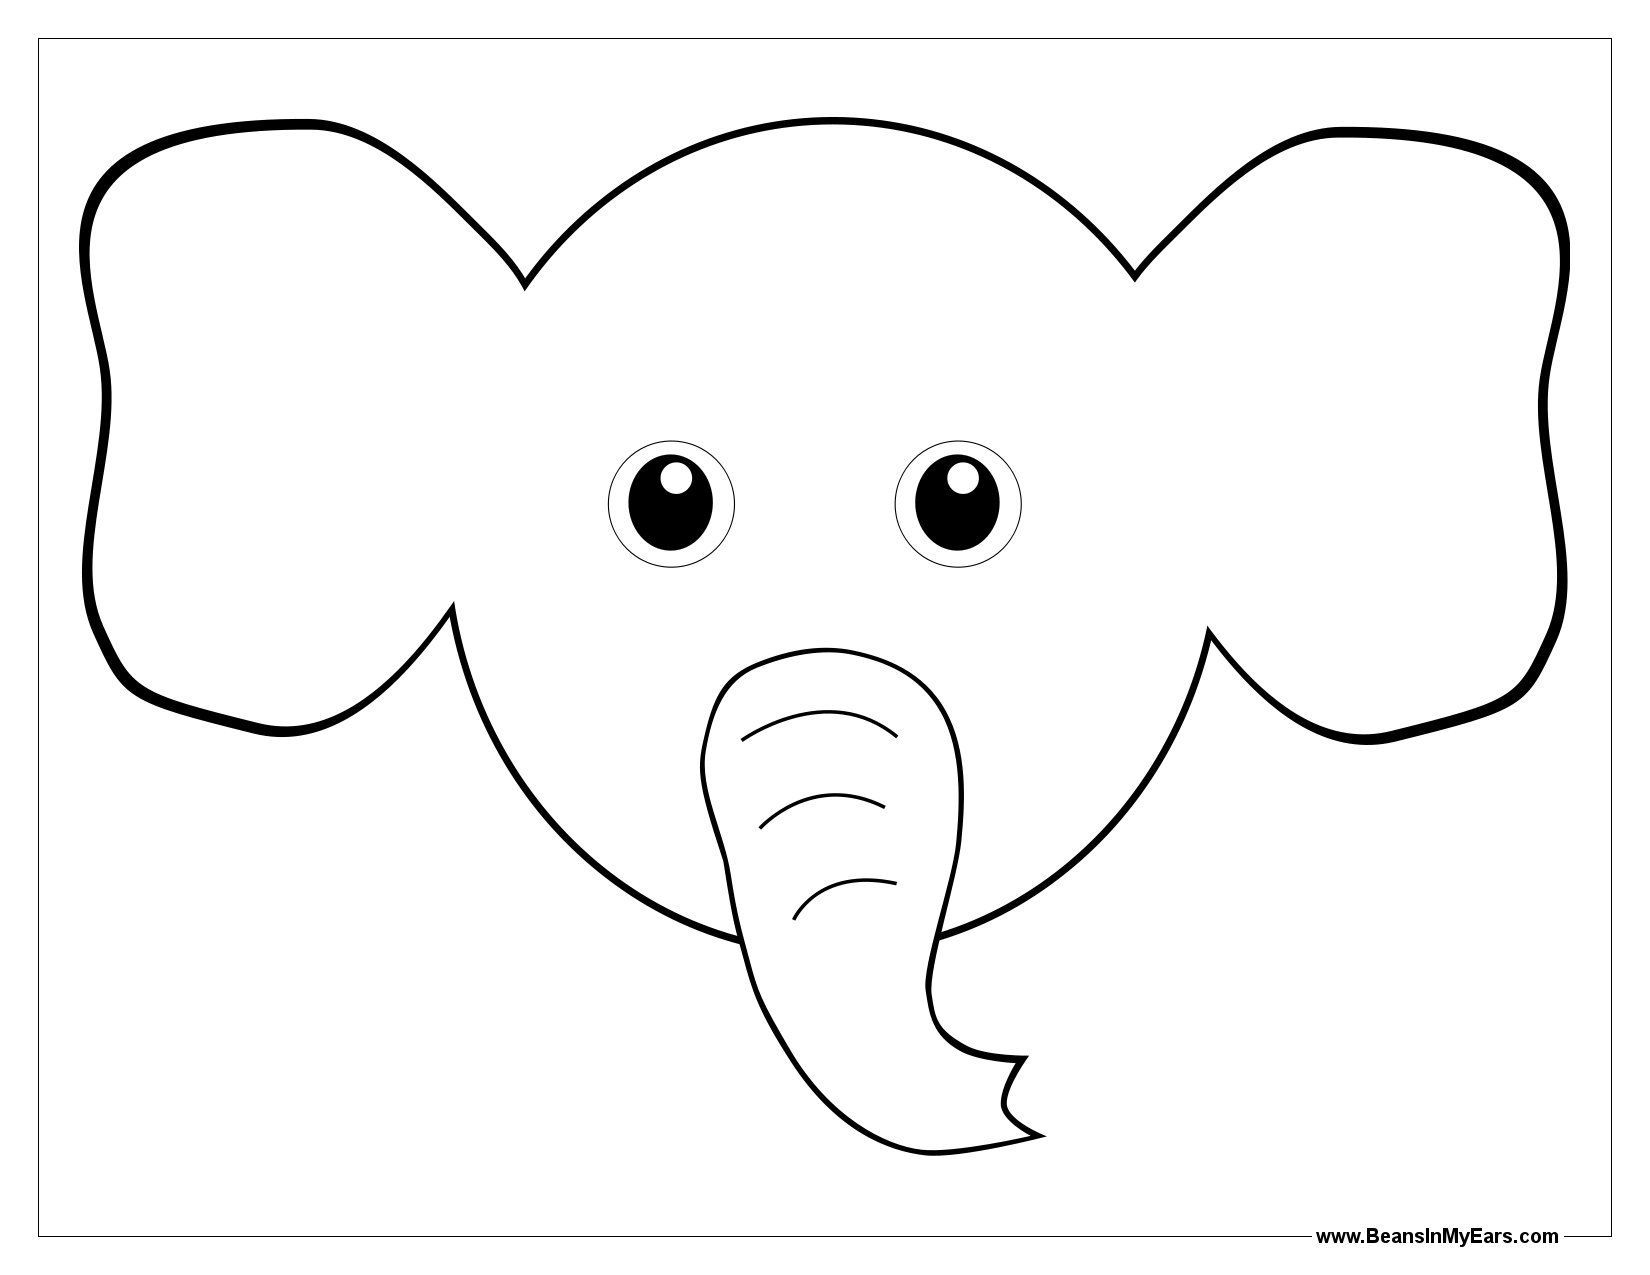 Coloring Elephant Head Pages 2020 Check More At Https Bo